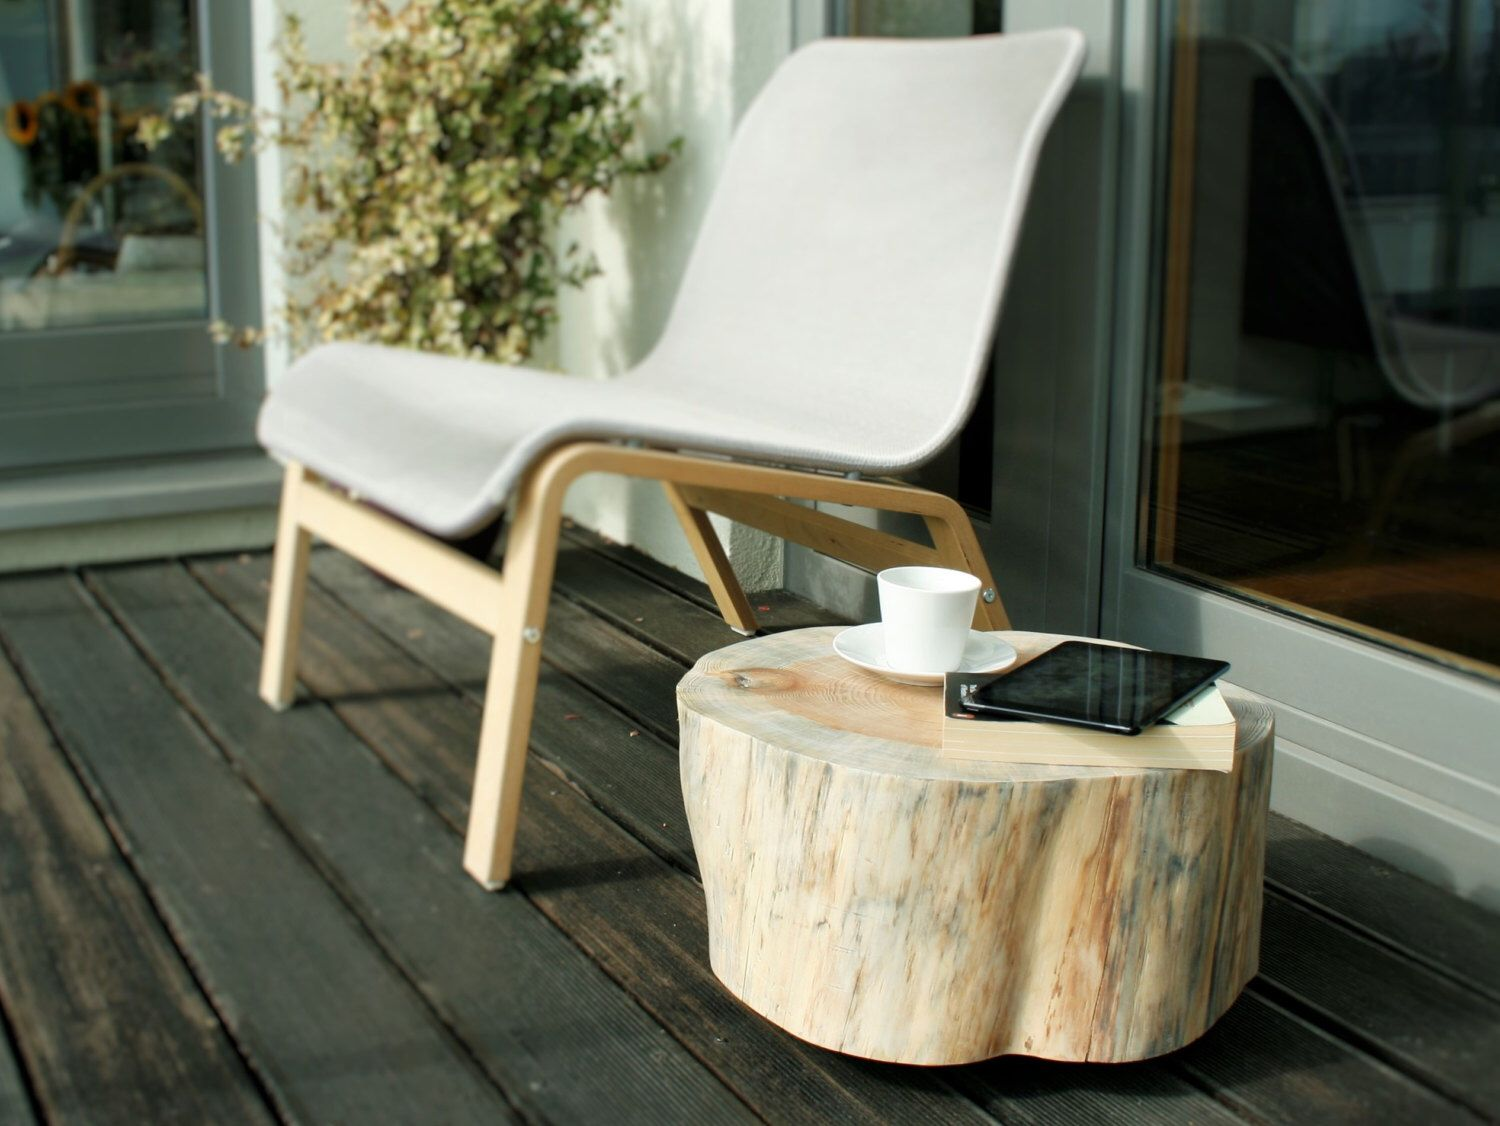 wooden stump table trunk side tree rolling casters white accent pine scandi style baumstamm rectangular patio furniture covers wicker chair bedroom chairs outdoor tall mirrored